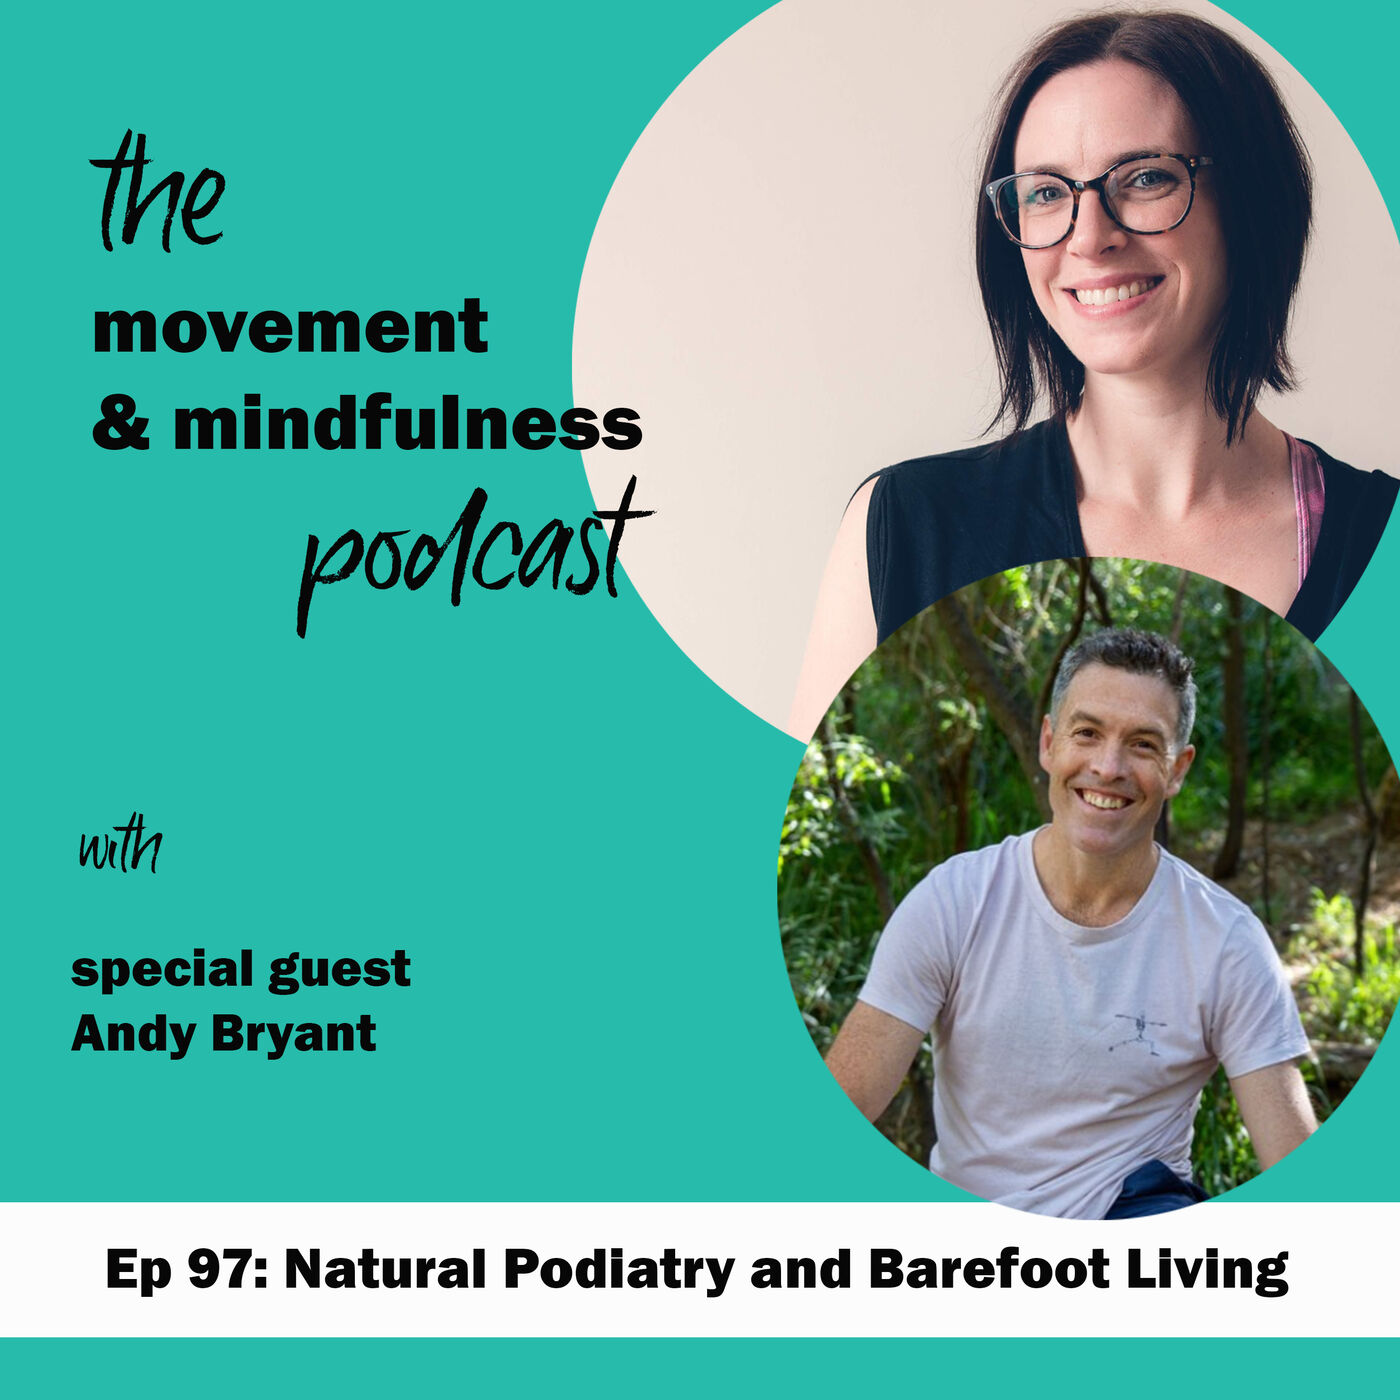 Ep 97: Natural Podiatry and Barefoot Living with Andy Bryant